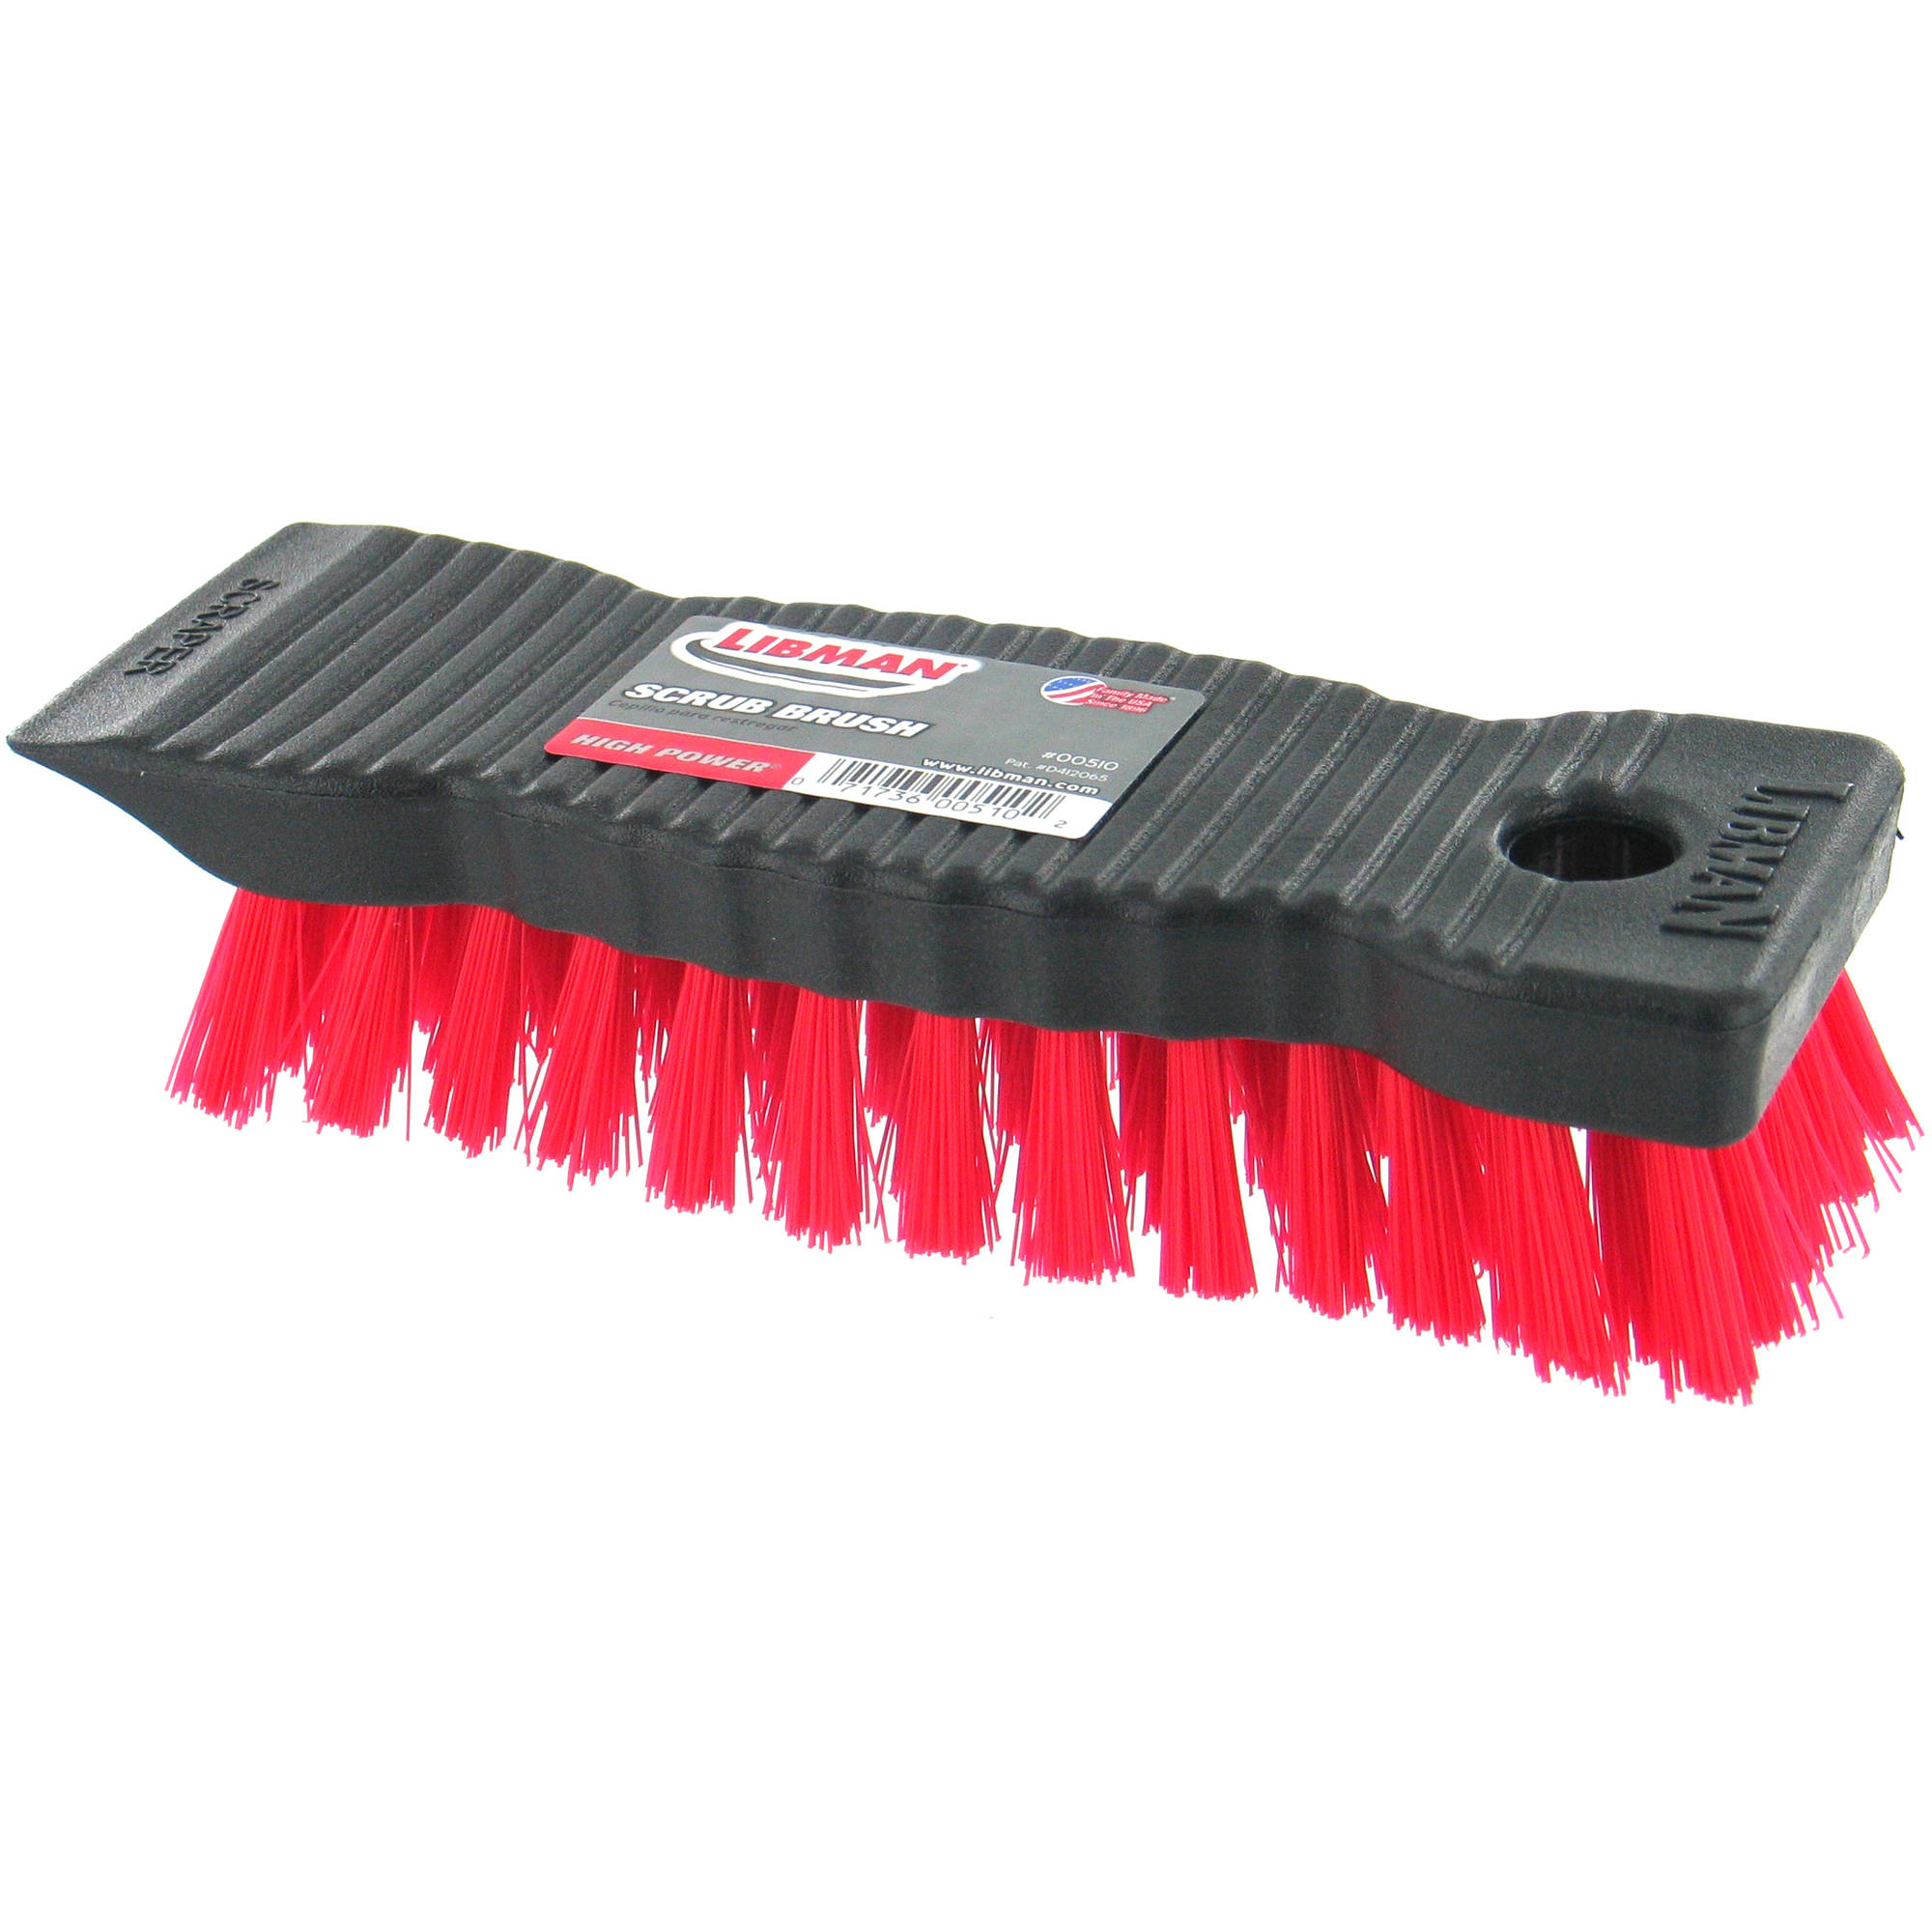 Libman High Power Scrub Brush